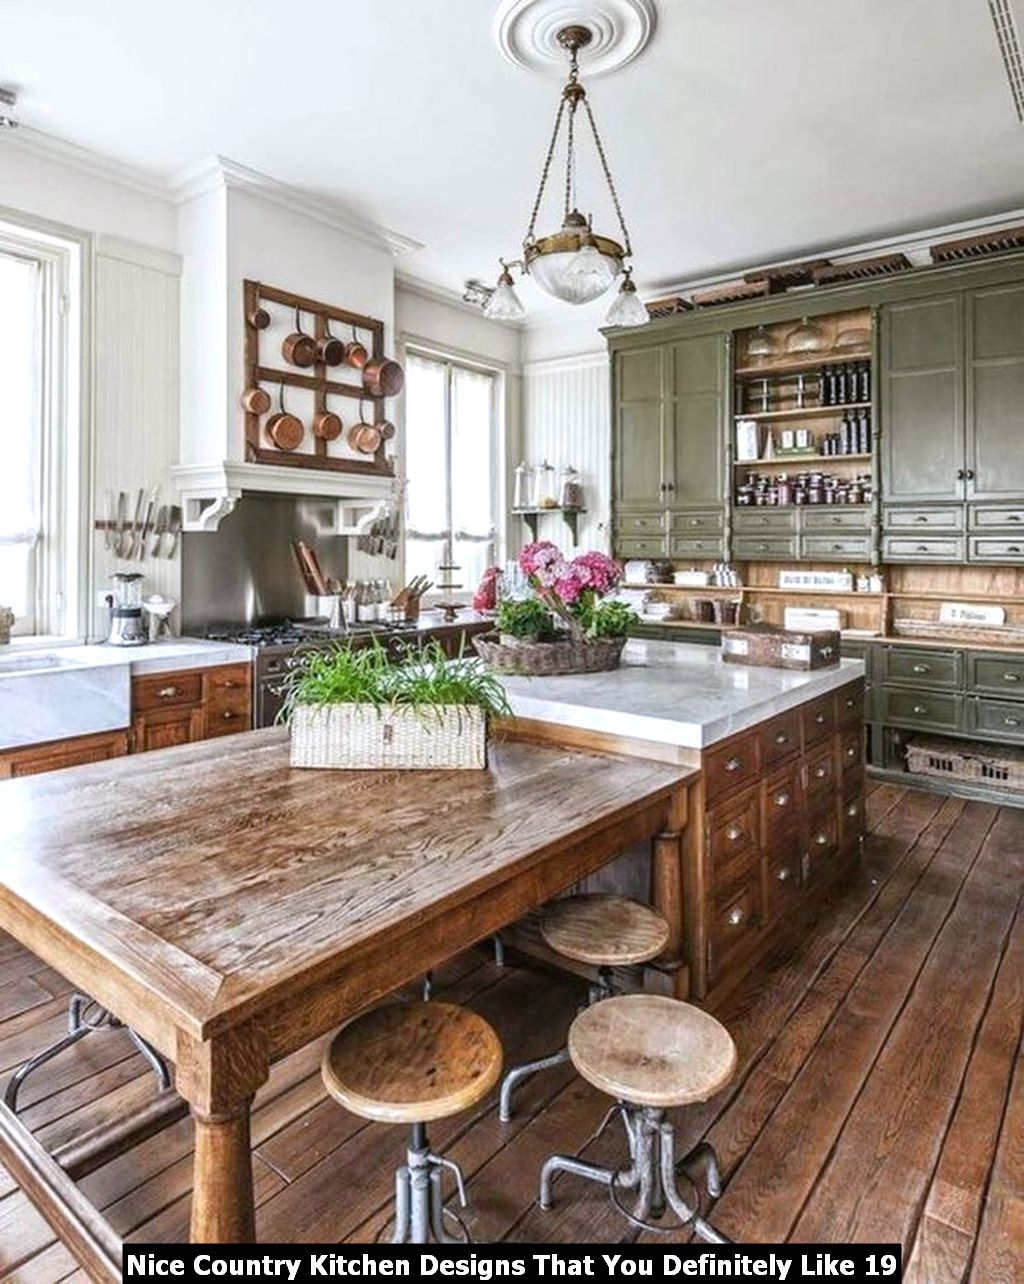 Nice Country Kitchen Designs That You Definitely Like 19